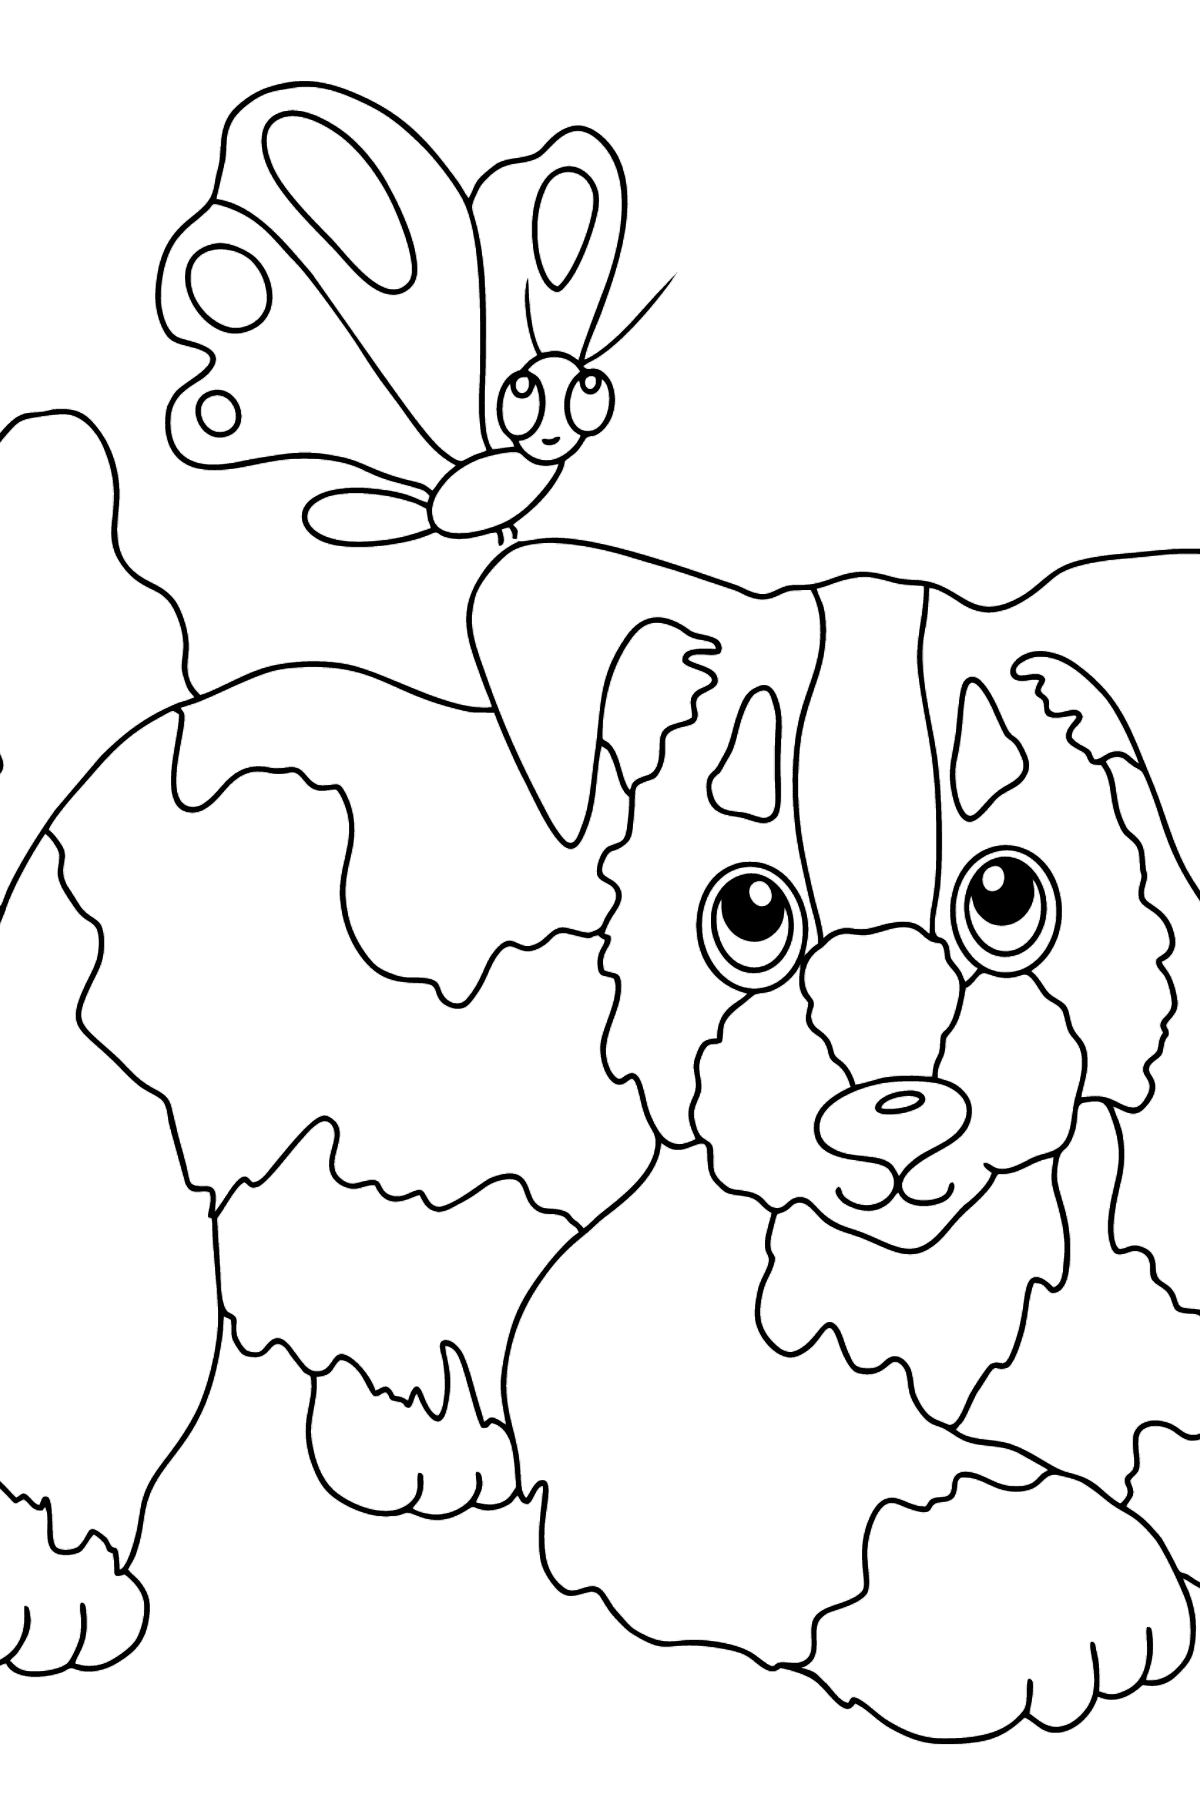 Coloring Page - A Dog is Playing with a Butterfly - Coloring Pages for Kids